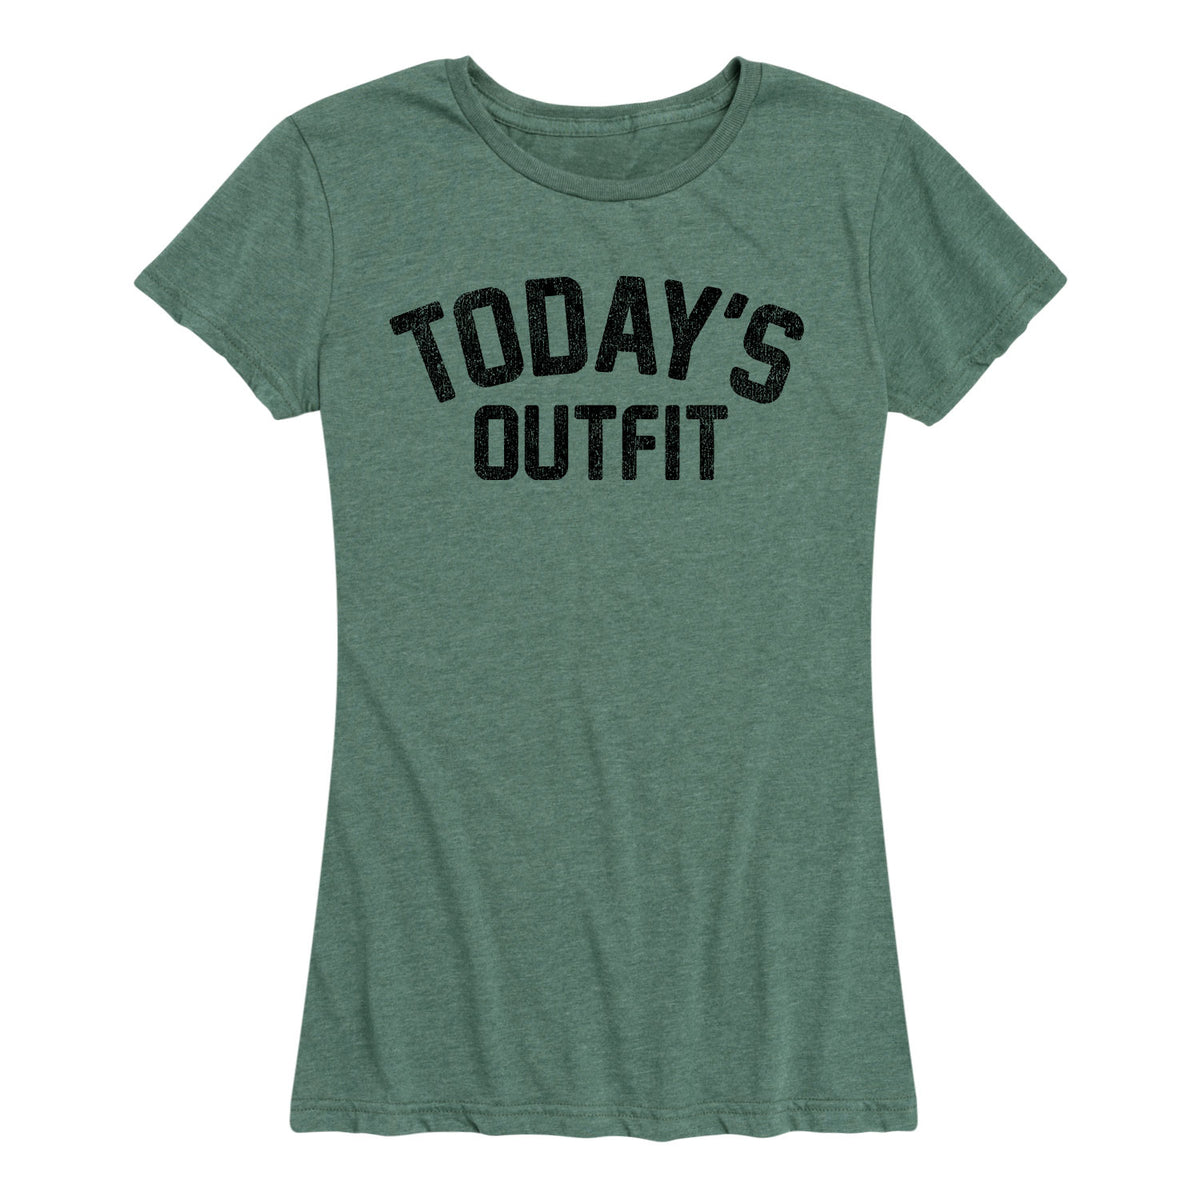 Today's Outfit - Women's Short Sleeve T-Shirt